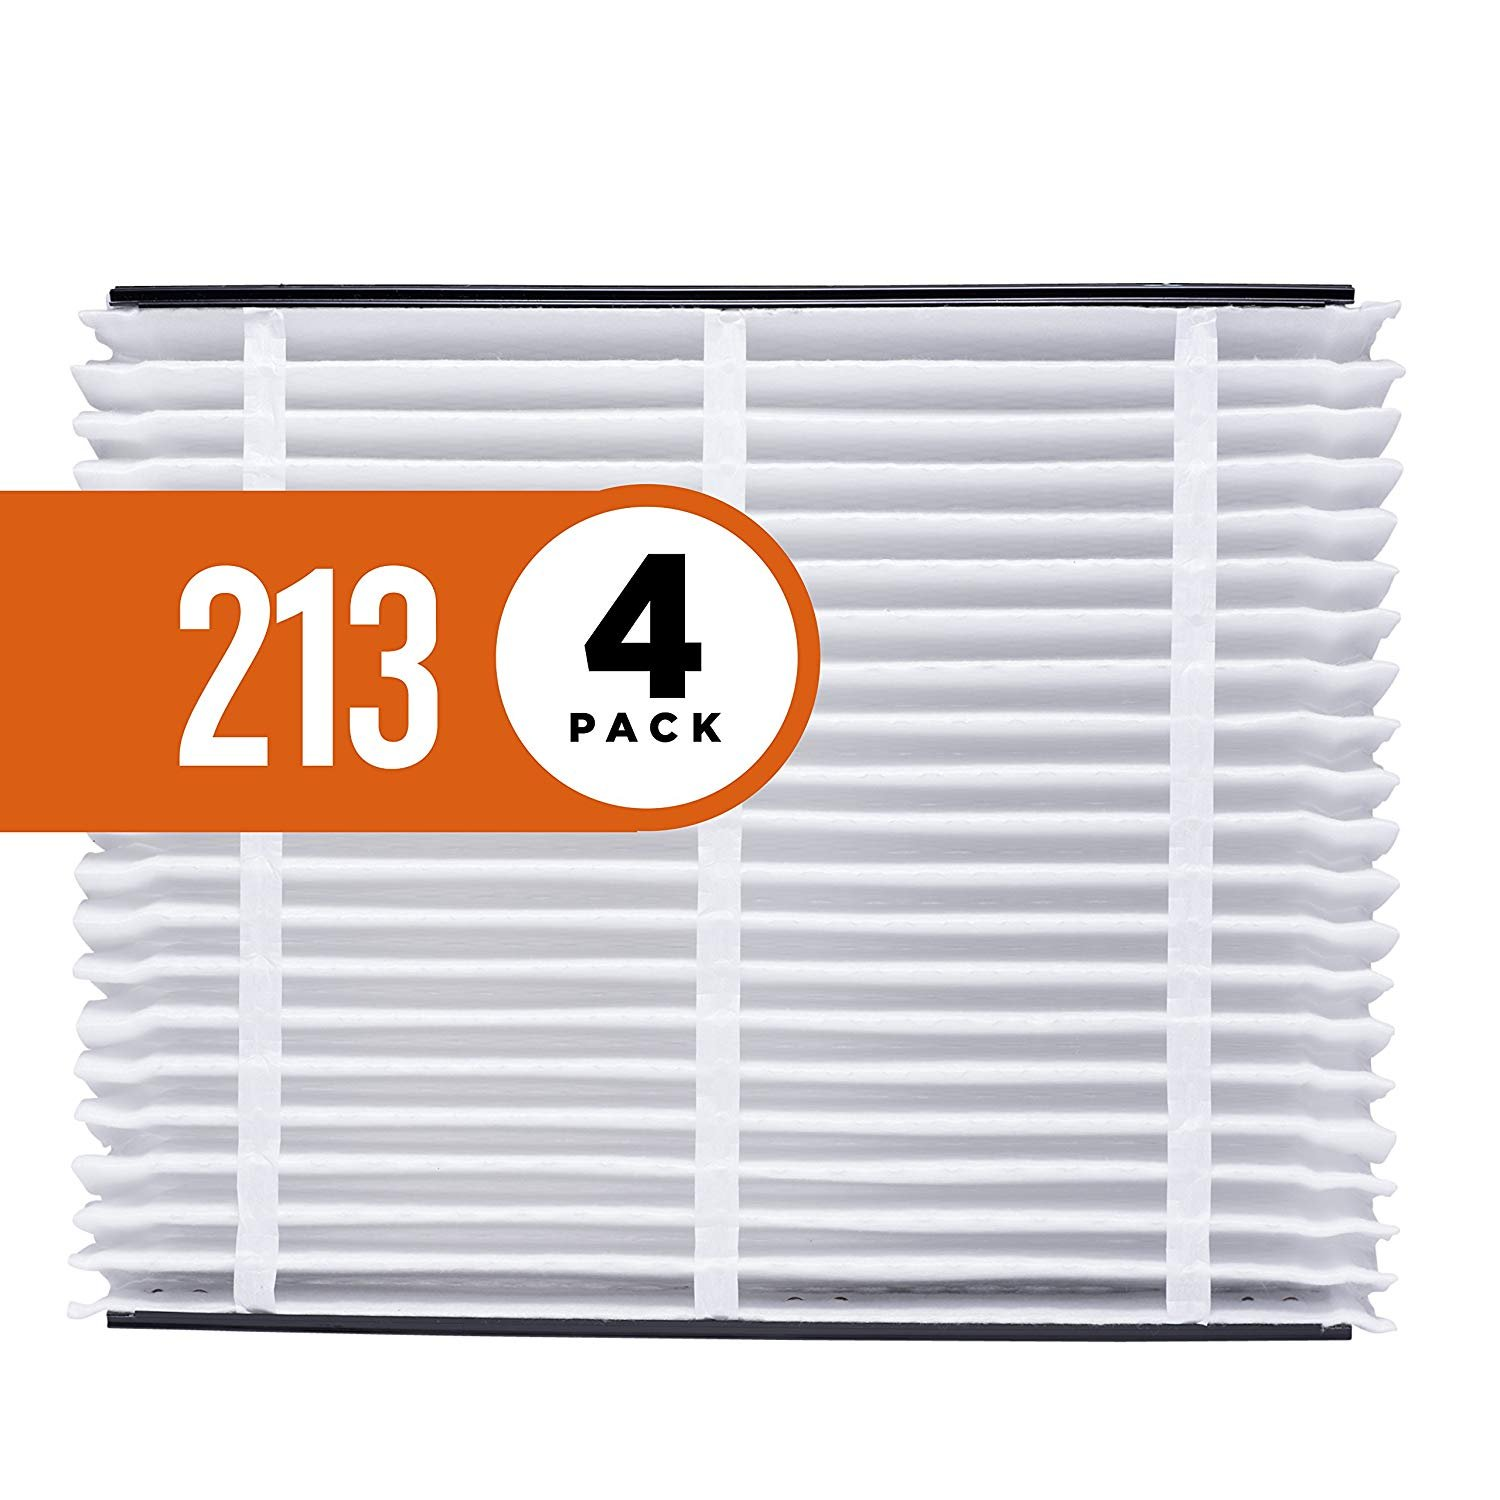 Aprilaire 213 Air Filter for Aprilaire Whole Home Air Purifiers, MERV 13 (Pack of 4)